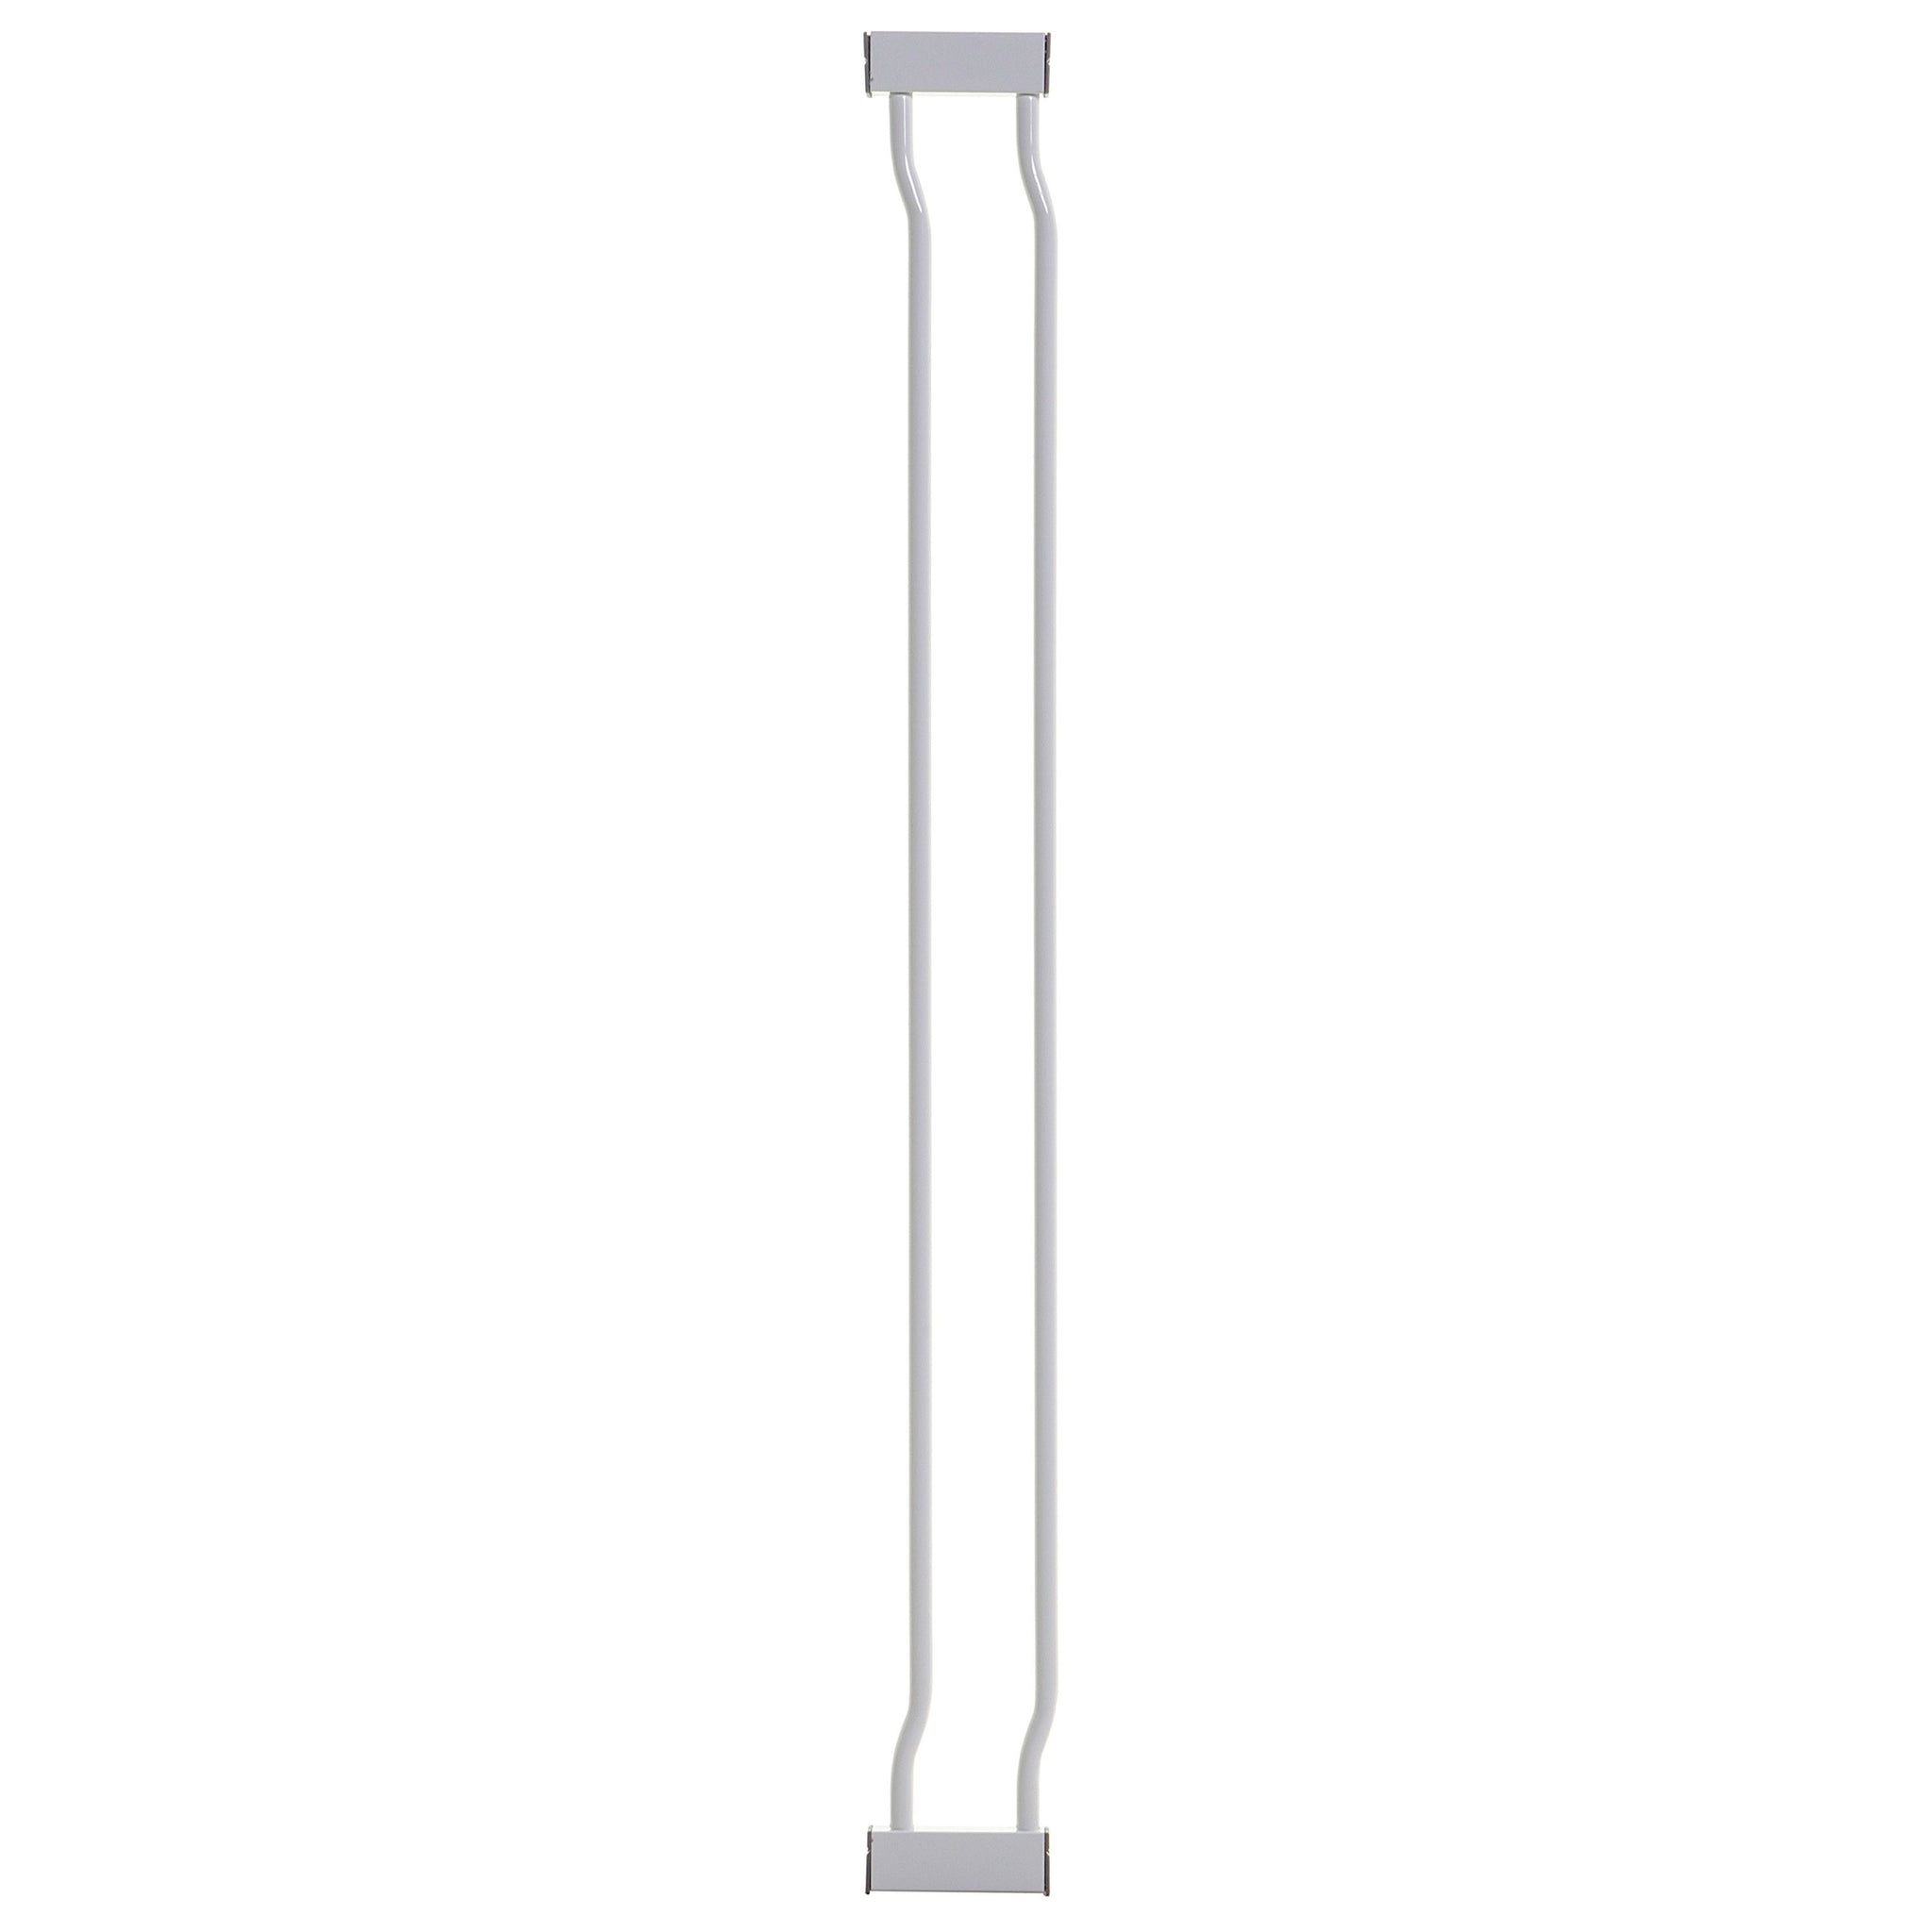 Dreambaby DB01965 (30) Liberty Tall Gate 9cm Extension - White